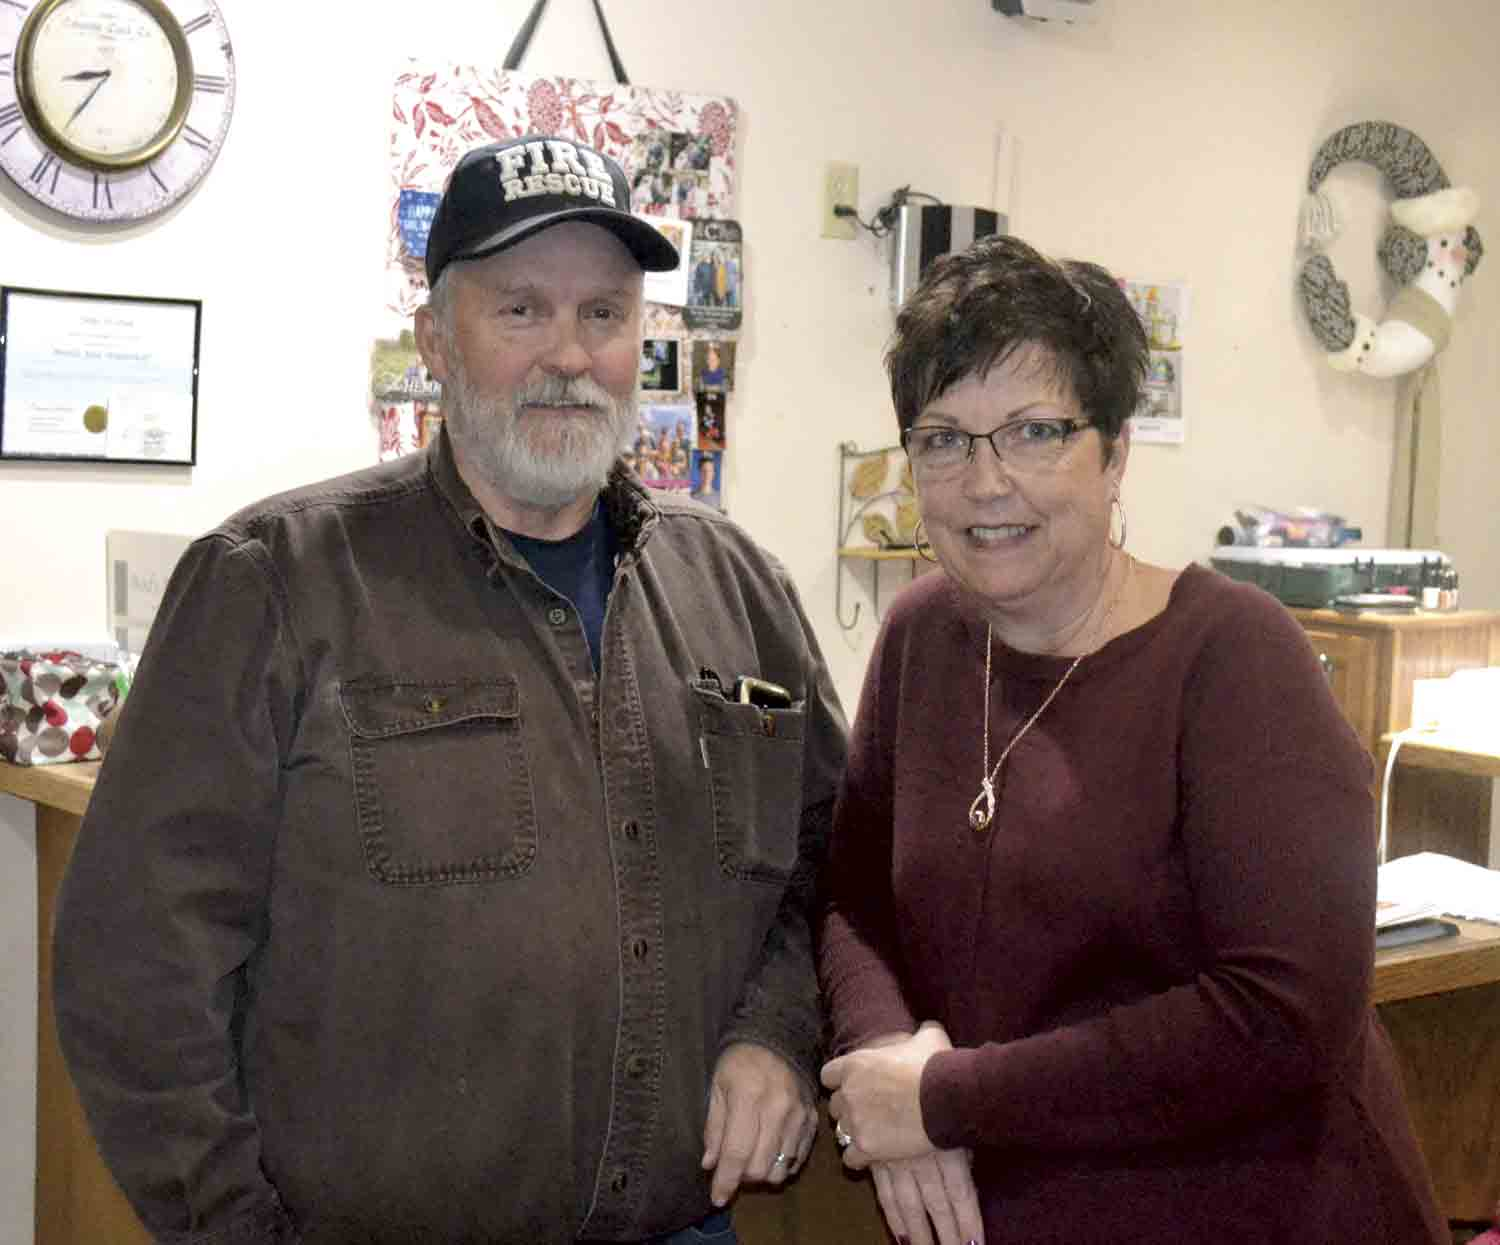 Clermont Fire Chief Randy Wiedenhoff and his wife, Marcia, owner and operator of Body Kneads in Clermont, both say that becoming involved in the North Fayette Valley Mentoring Program is one of the best choices they have made. Randy has mentored the same student for three years, and...